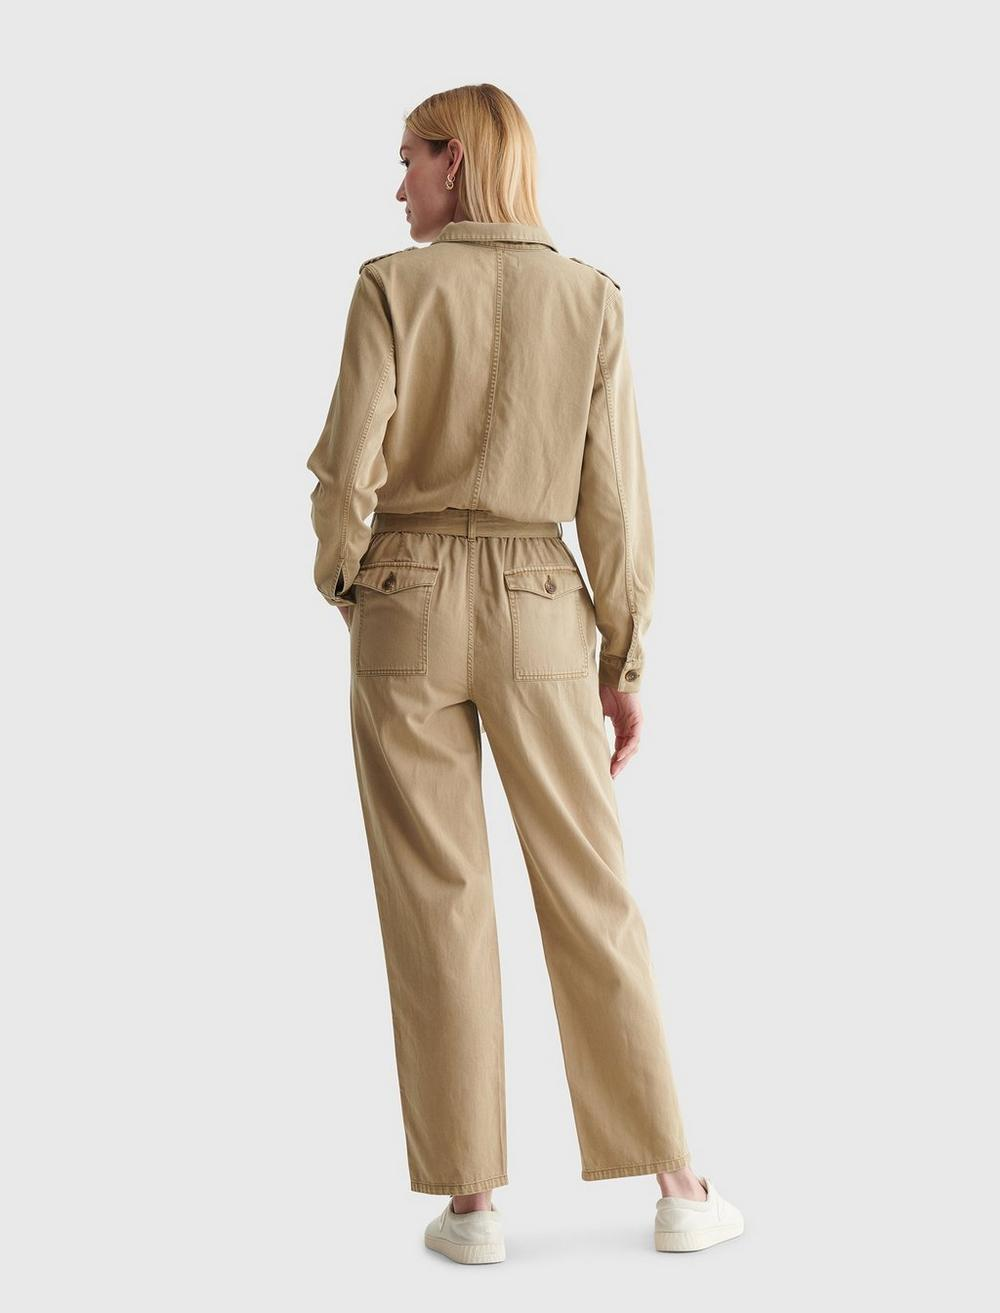 OUT OF TOWN JUMPSUIT, image 3